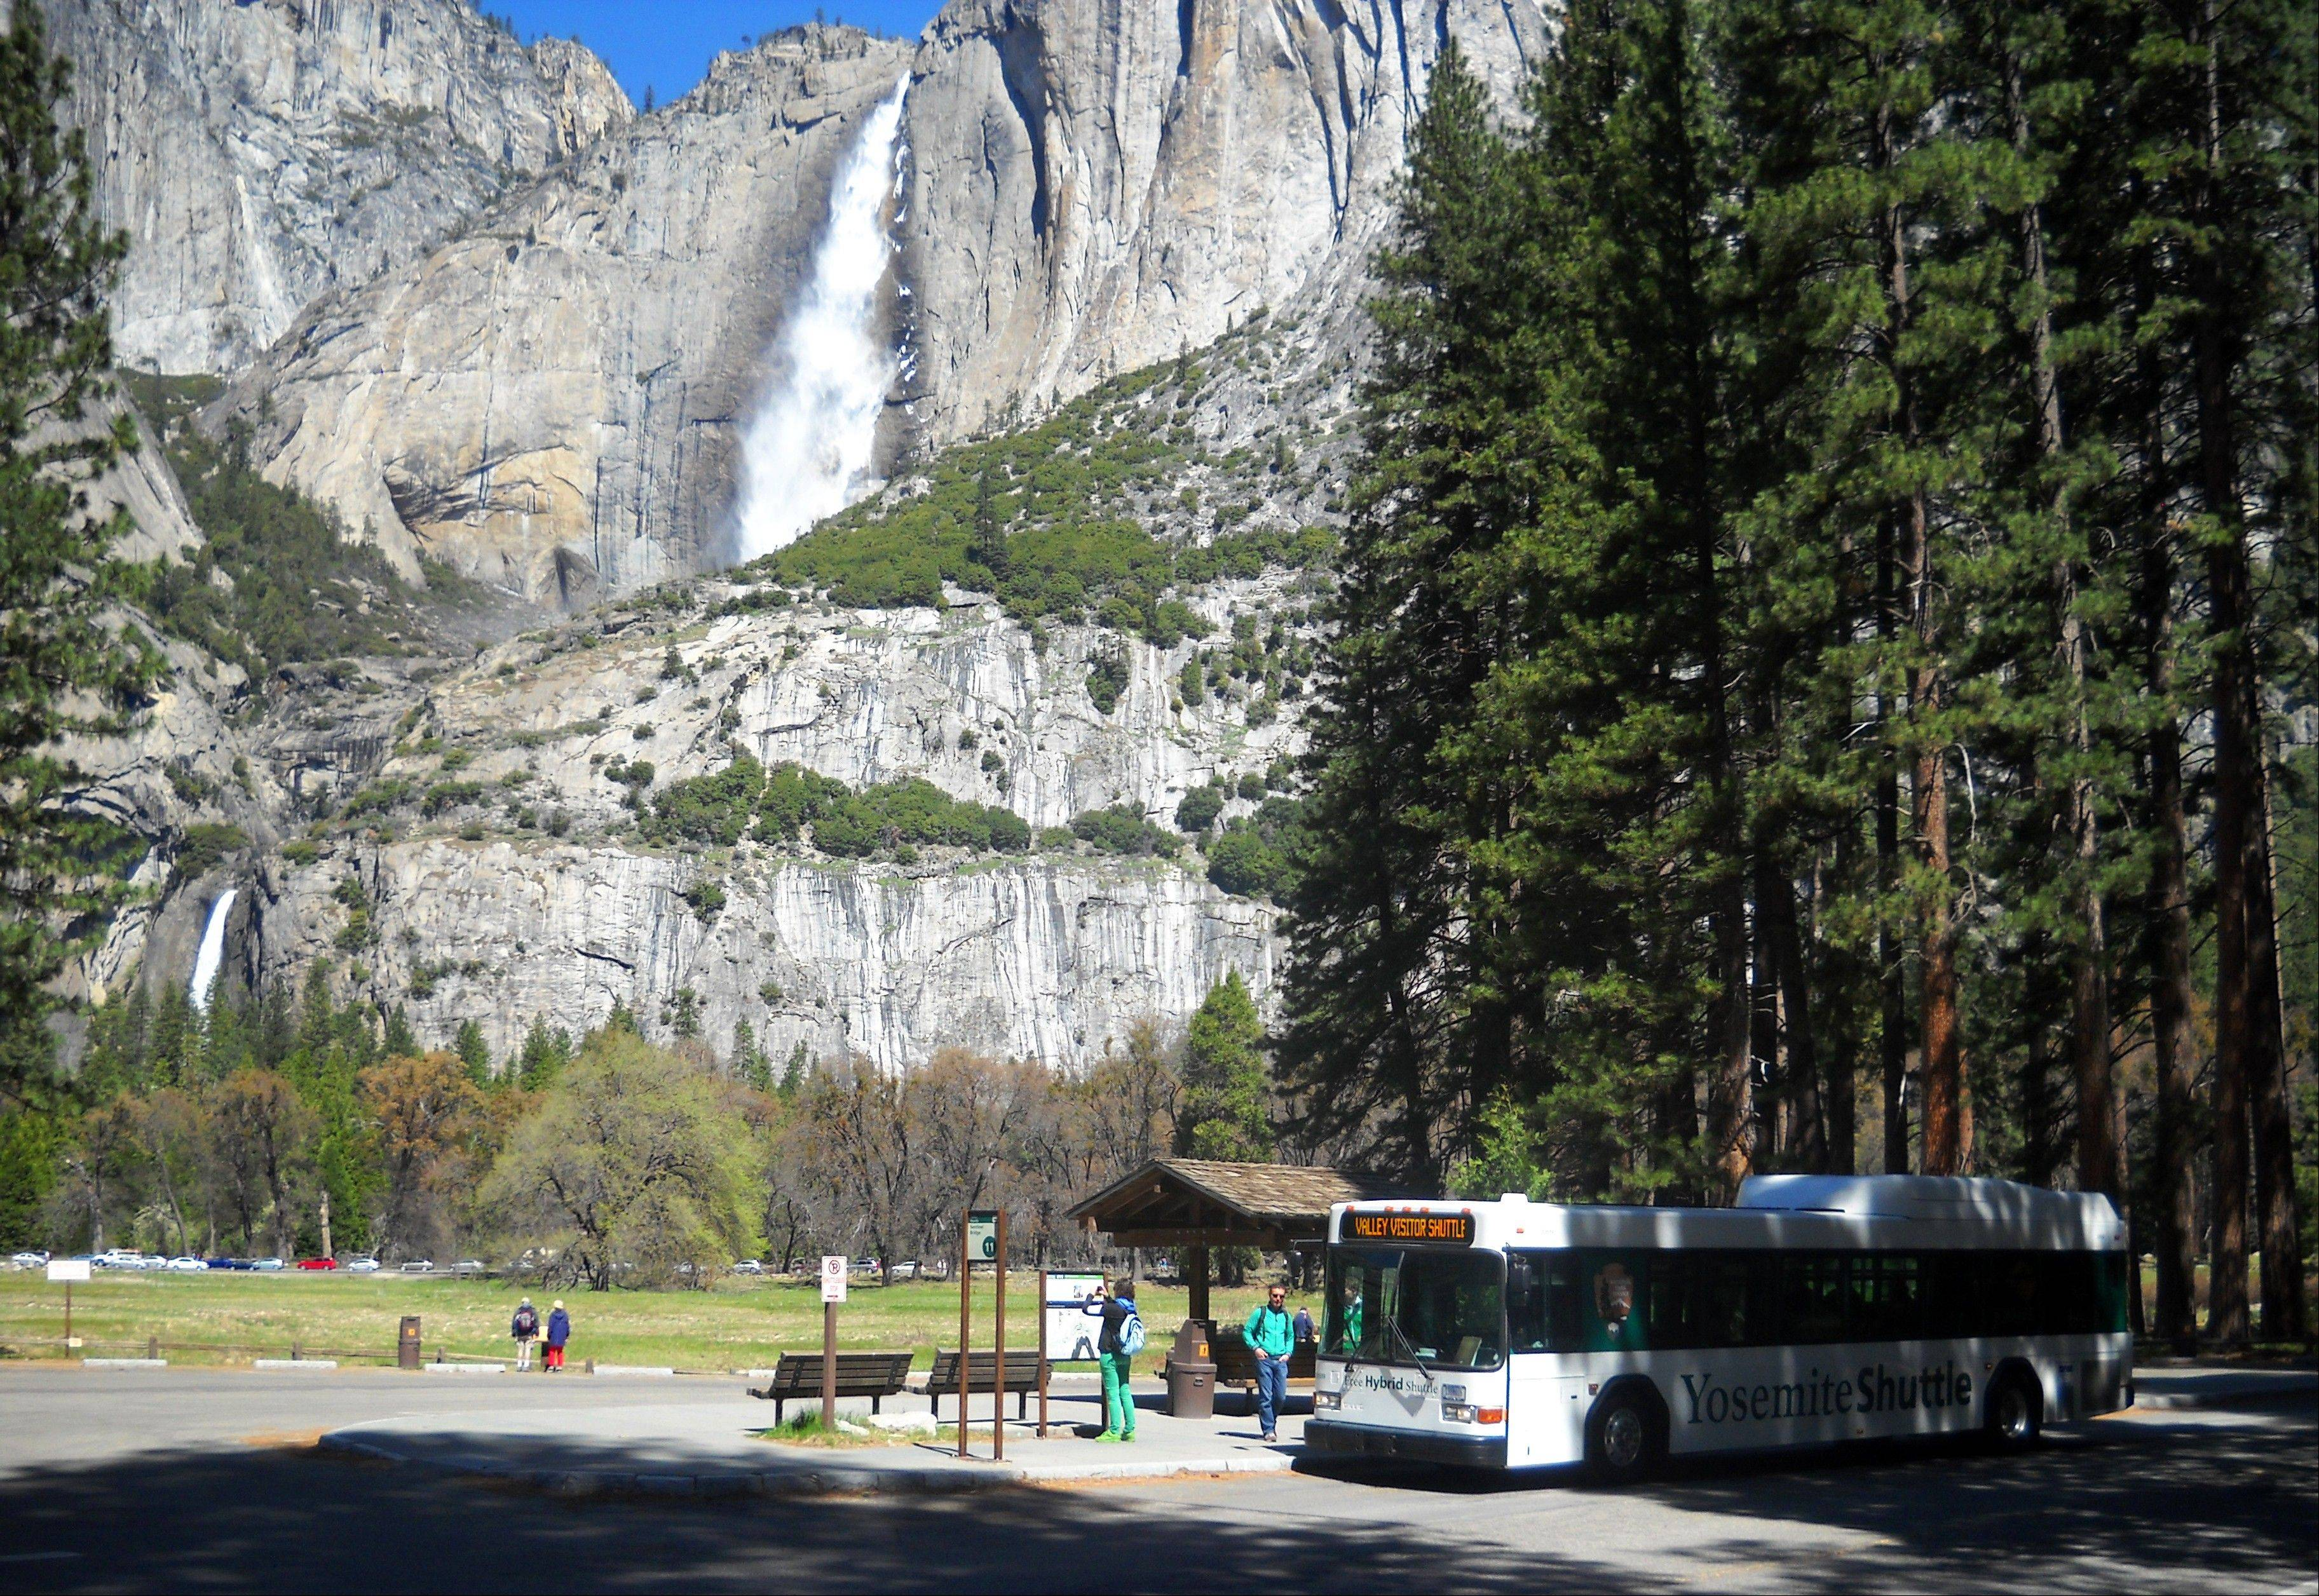 The free shuttle bus at Yosemite National Park picks up passengers at Sentinel Bridge.